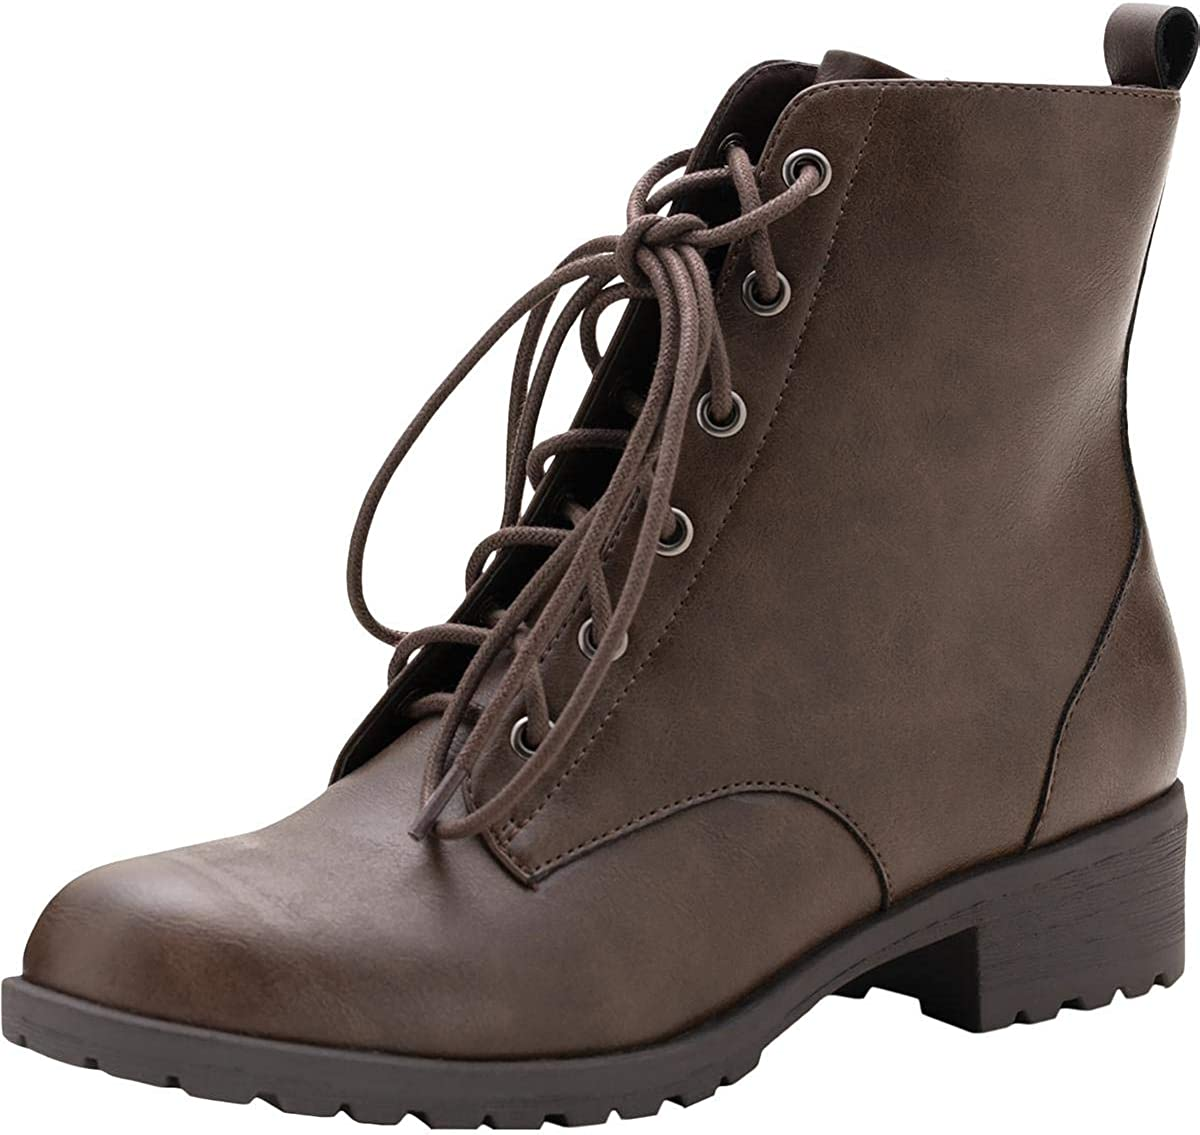 American Rag Womens Franie Leather Closed Toe Ankle Combat Boots